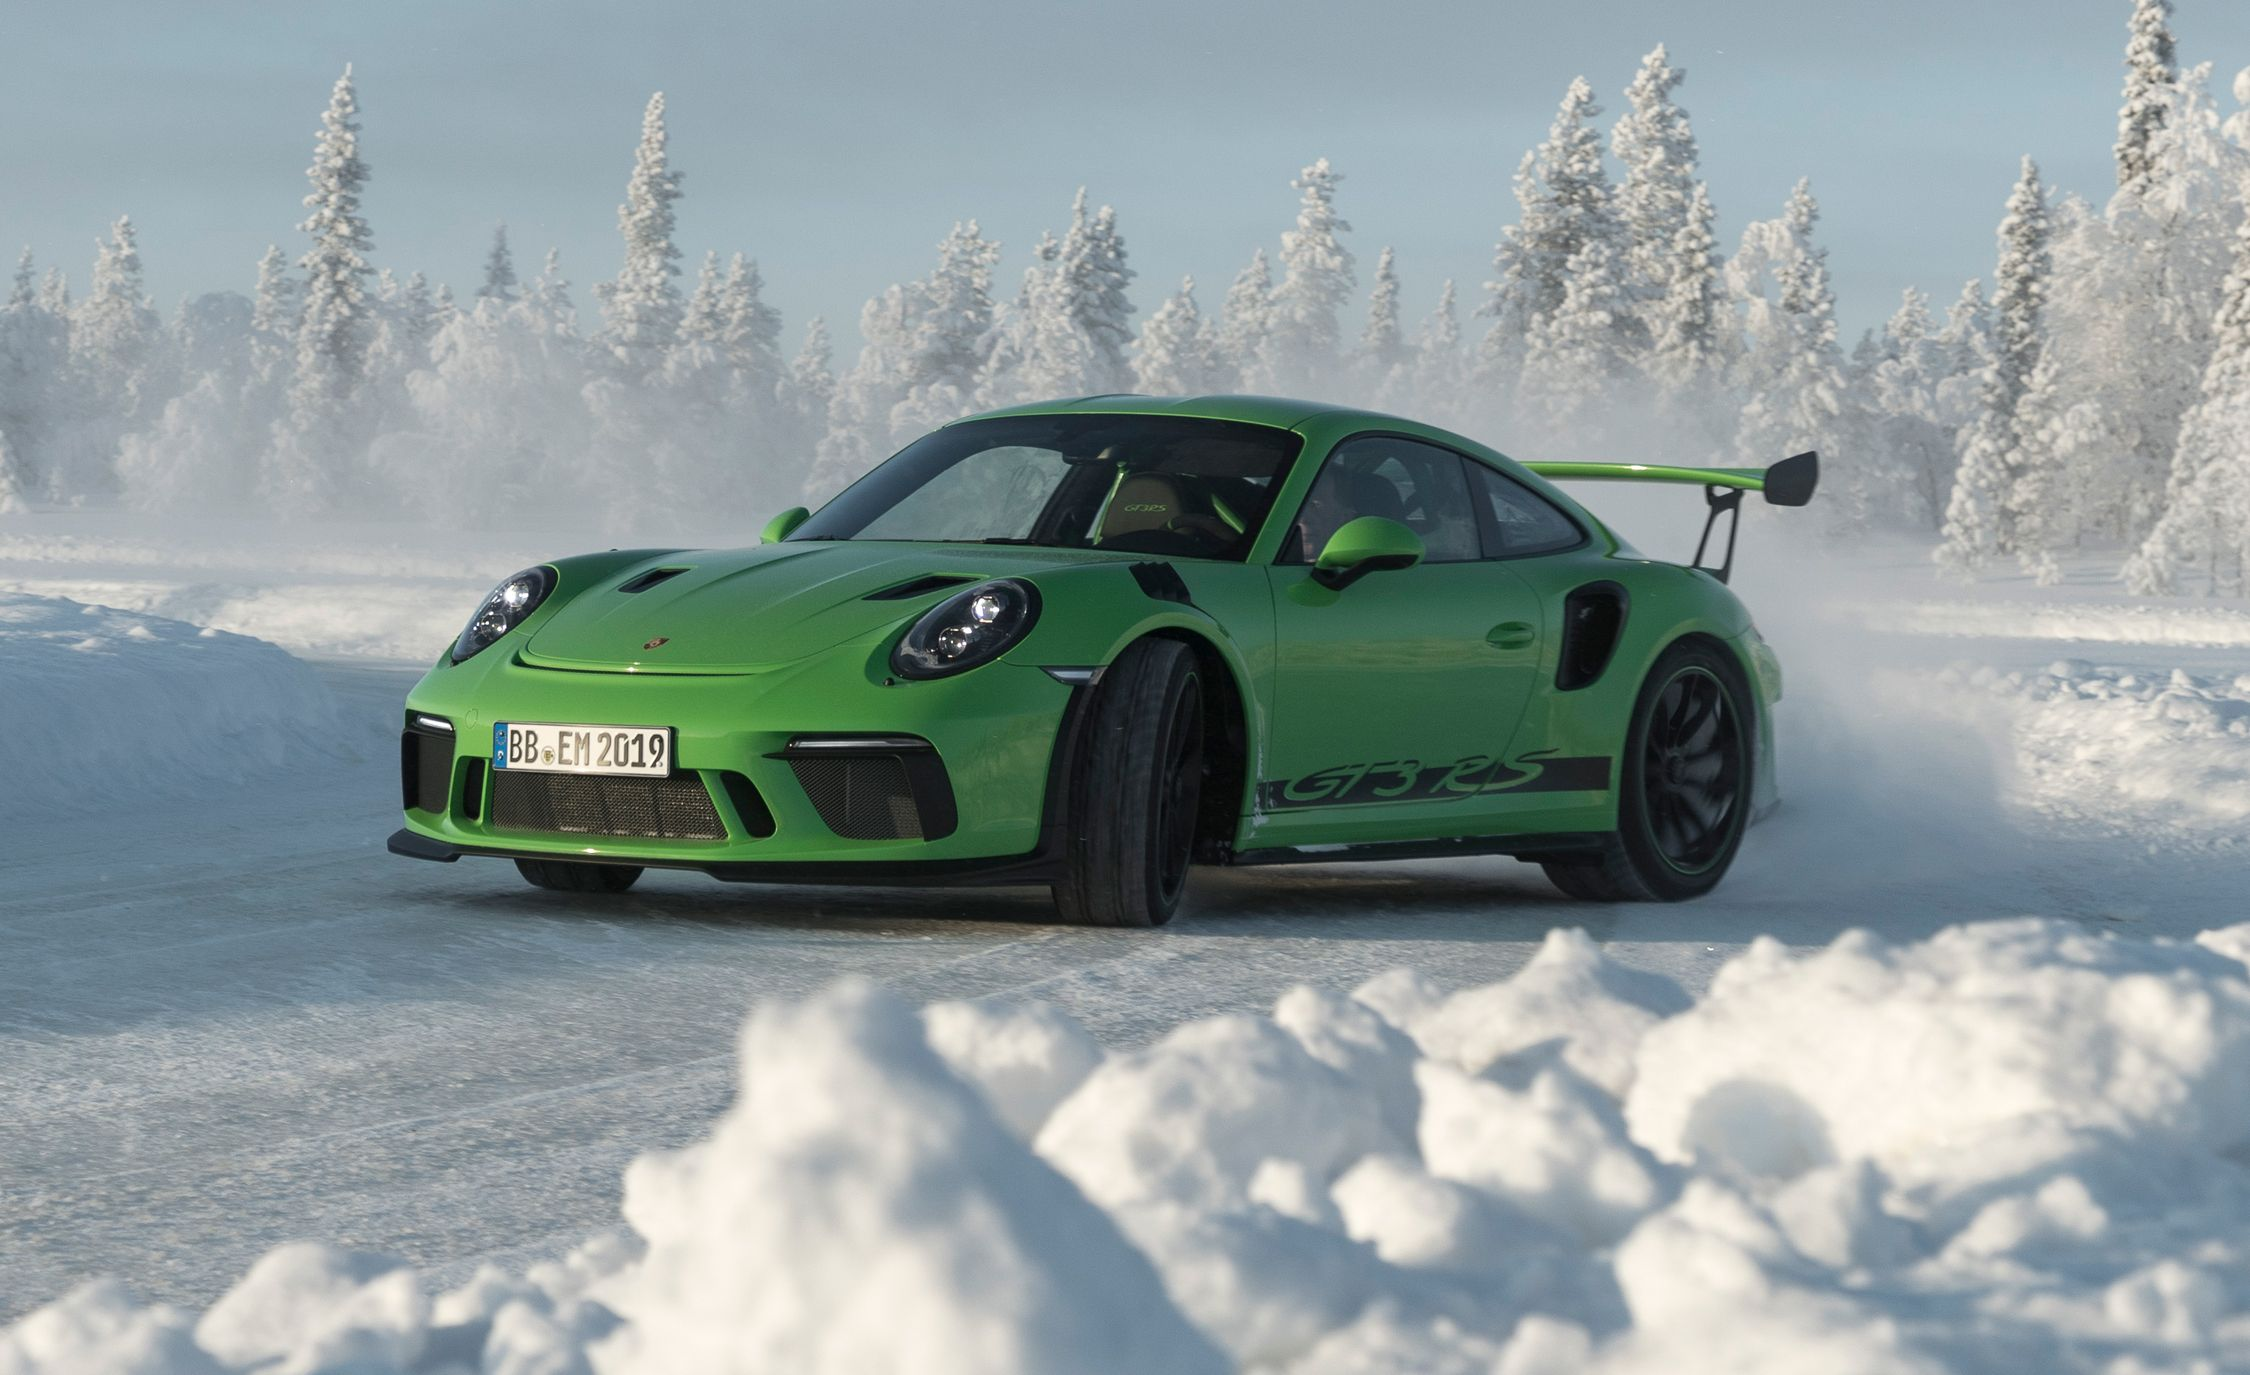 2019 Porsche 911 GT3 RS: It Looks Bad-Ass Because It Is